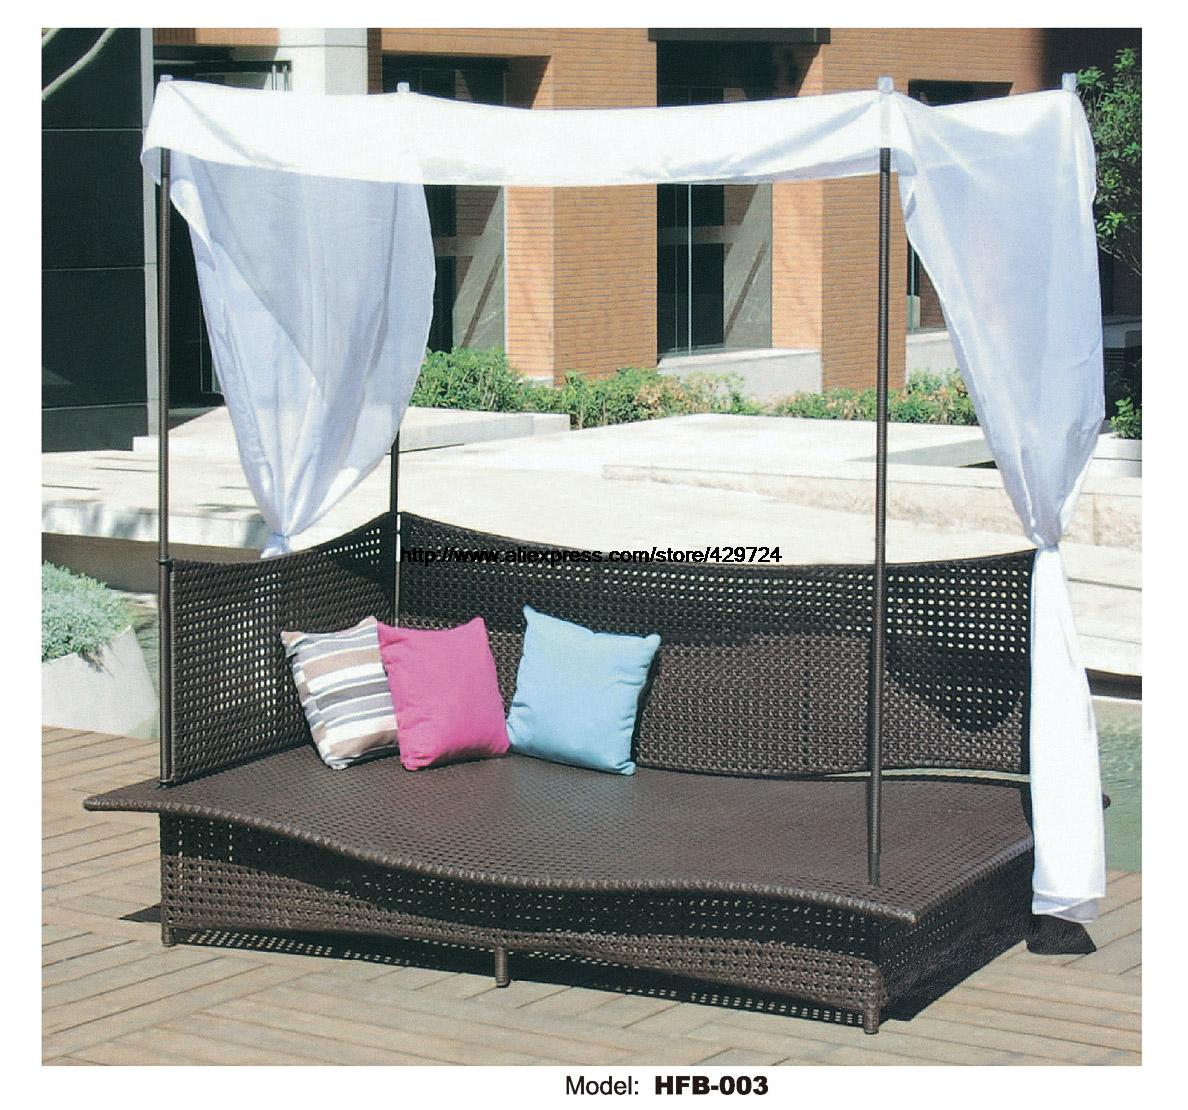 Wave chaise bed price - Rectangle Rattan Sofa Holiday Outdoor Rattan Sofa Bed Terrace Sun Bed Outdoor Leisure Patio Balcony Sofa